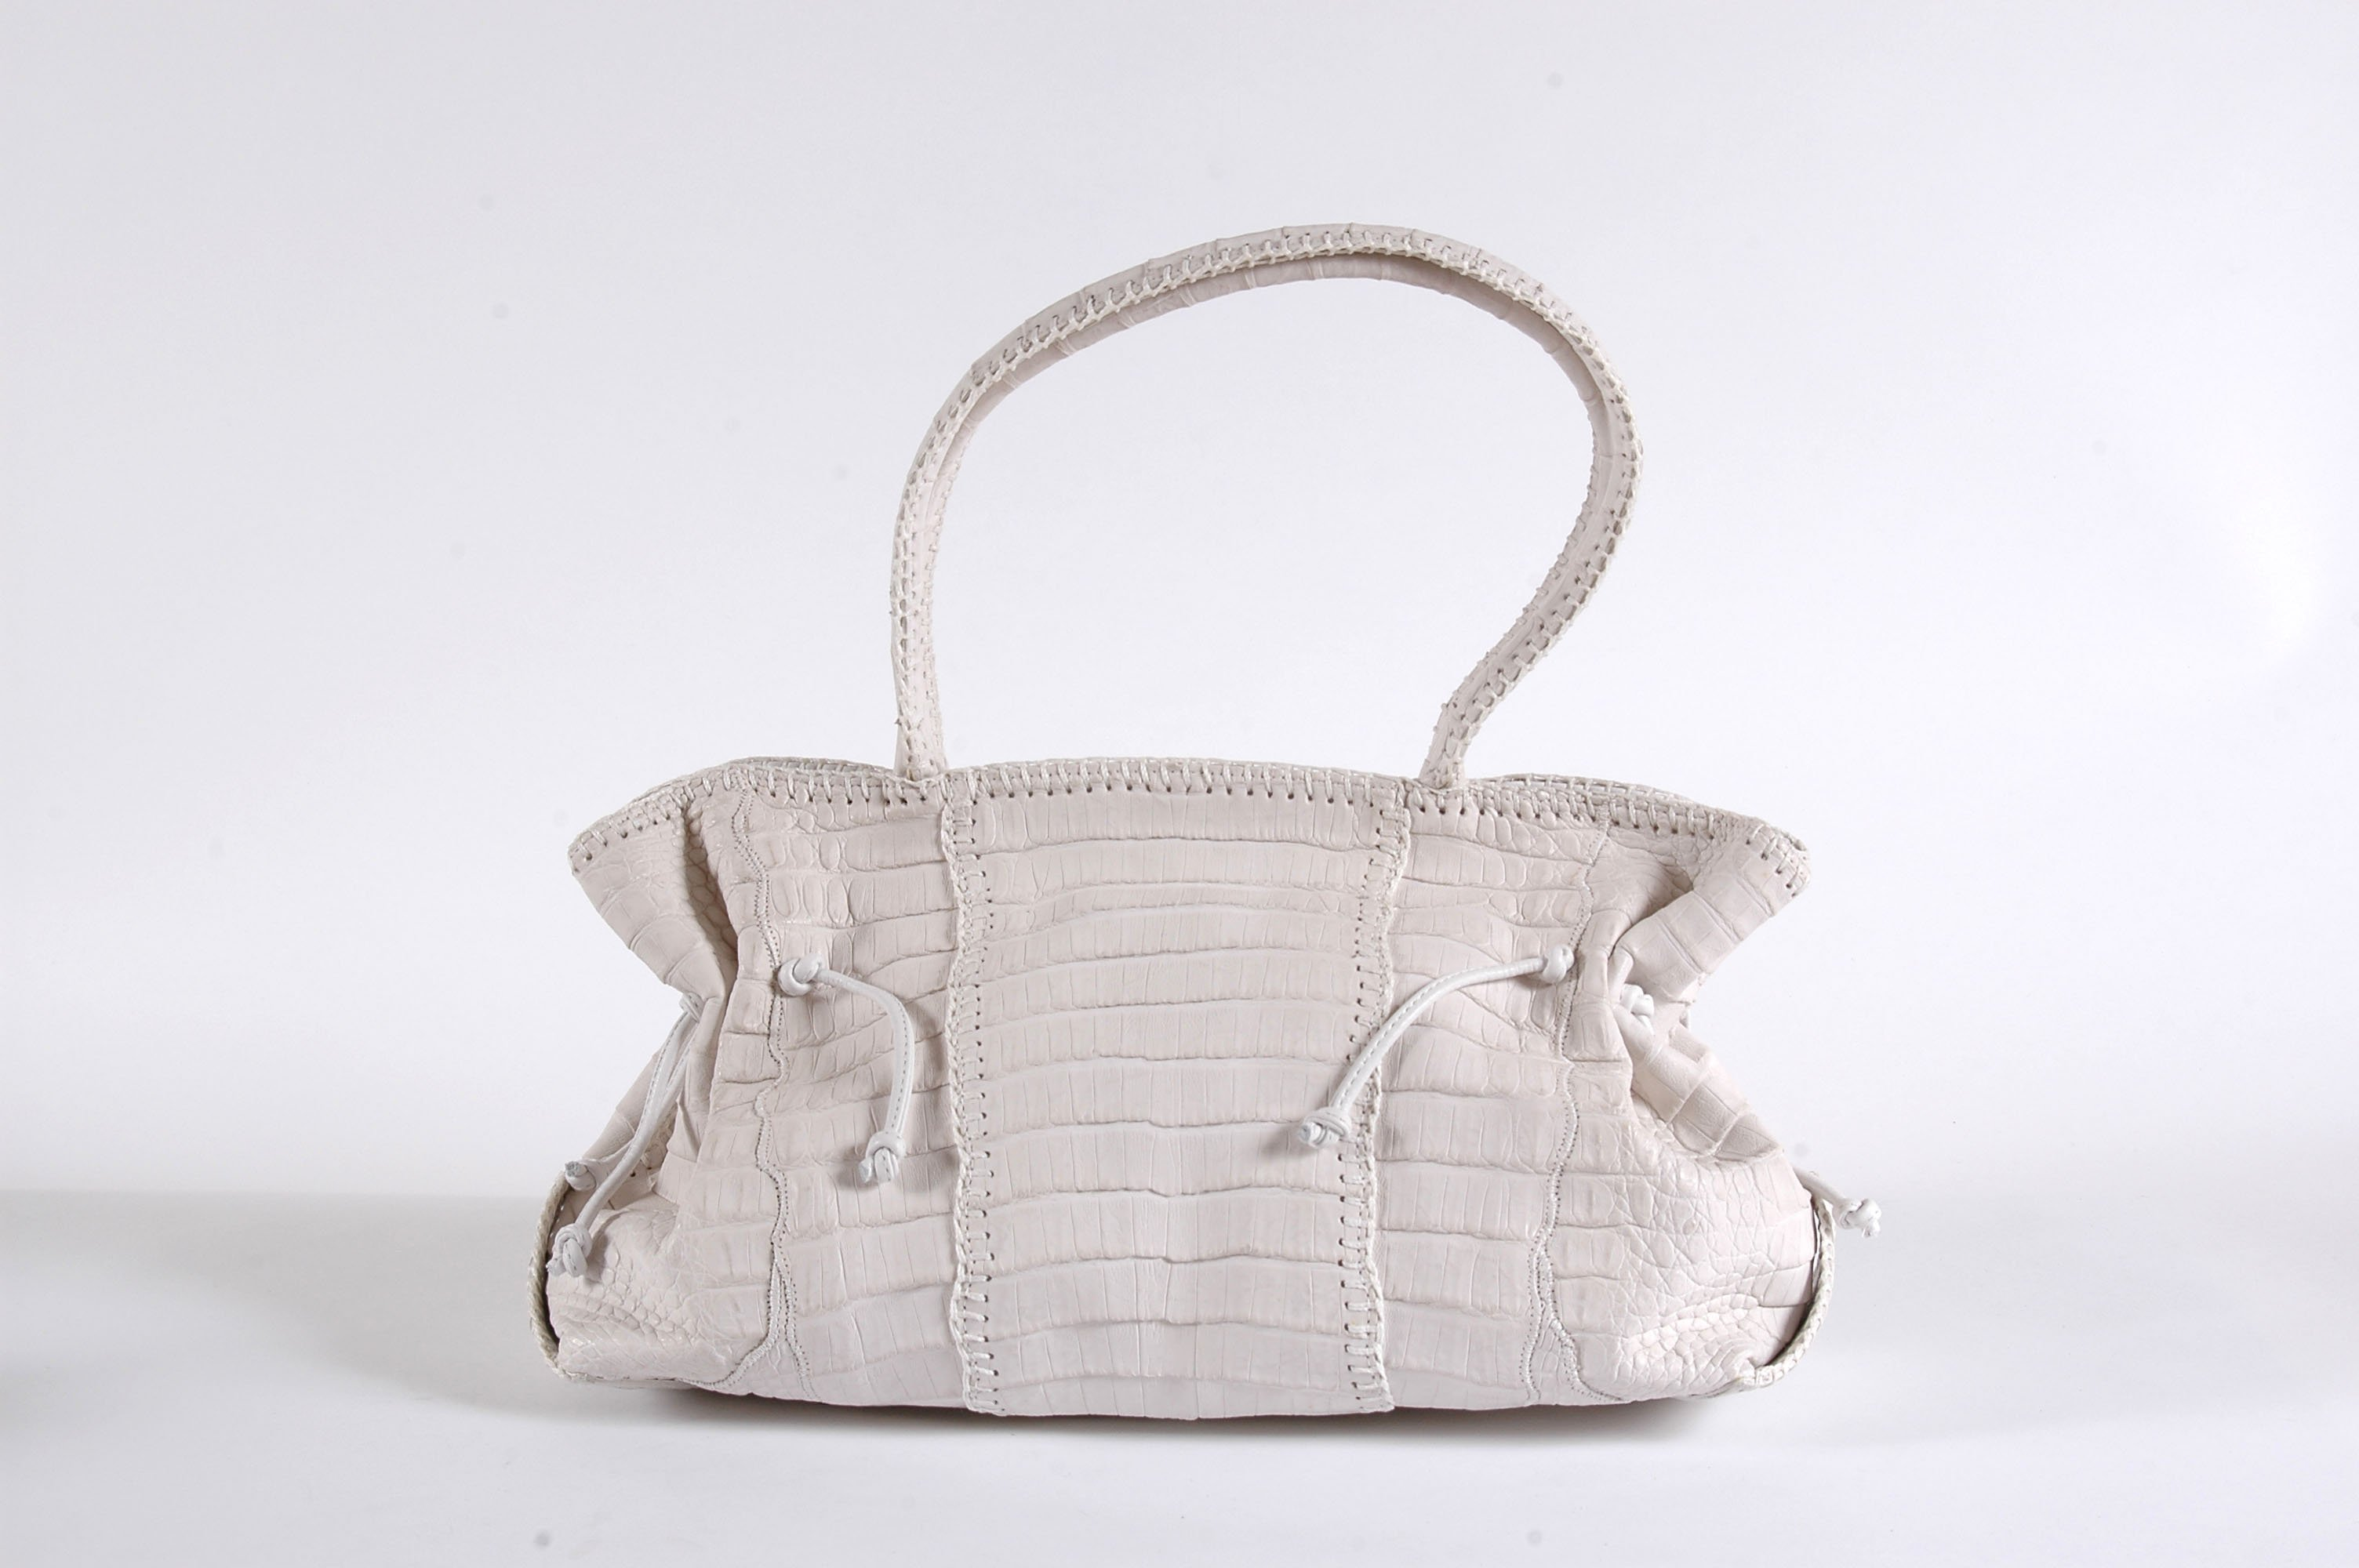 Choosing the Best Exotic Leather for Your Handbag